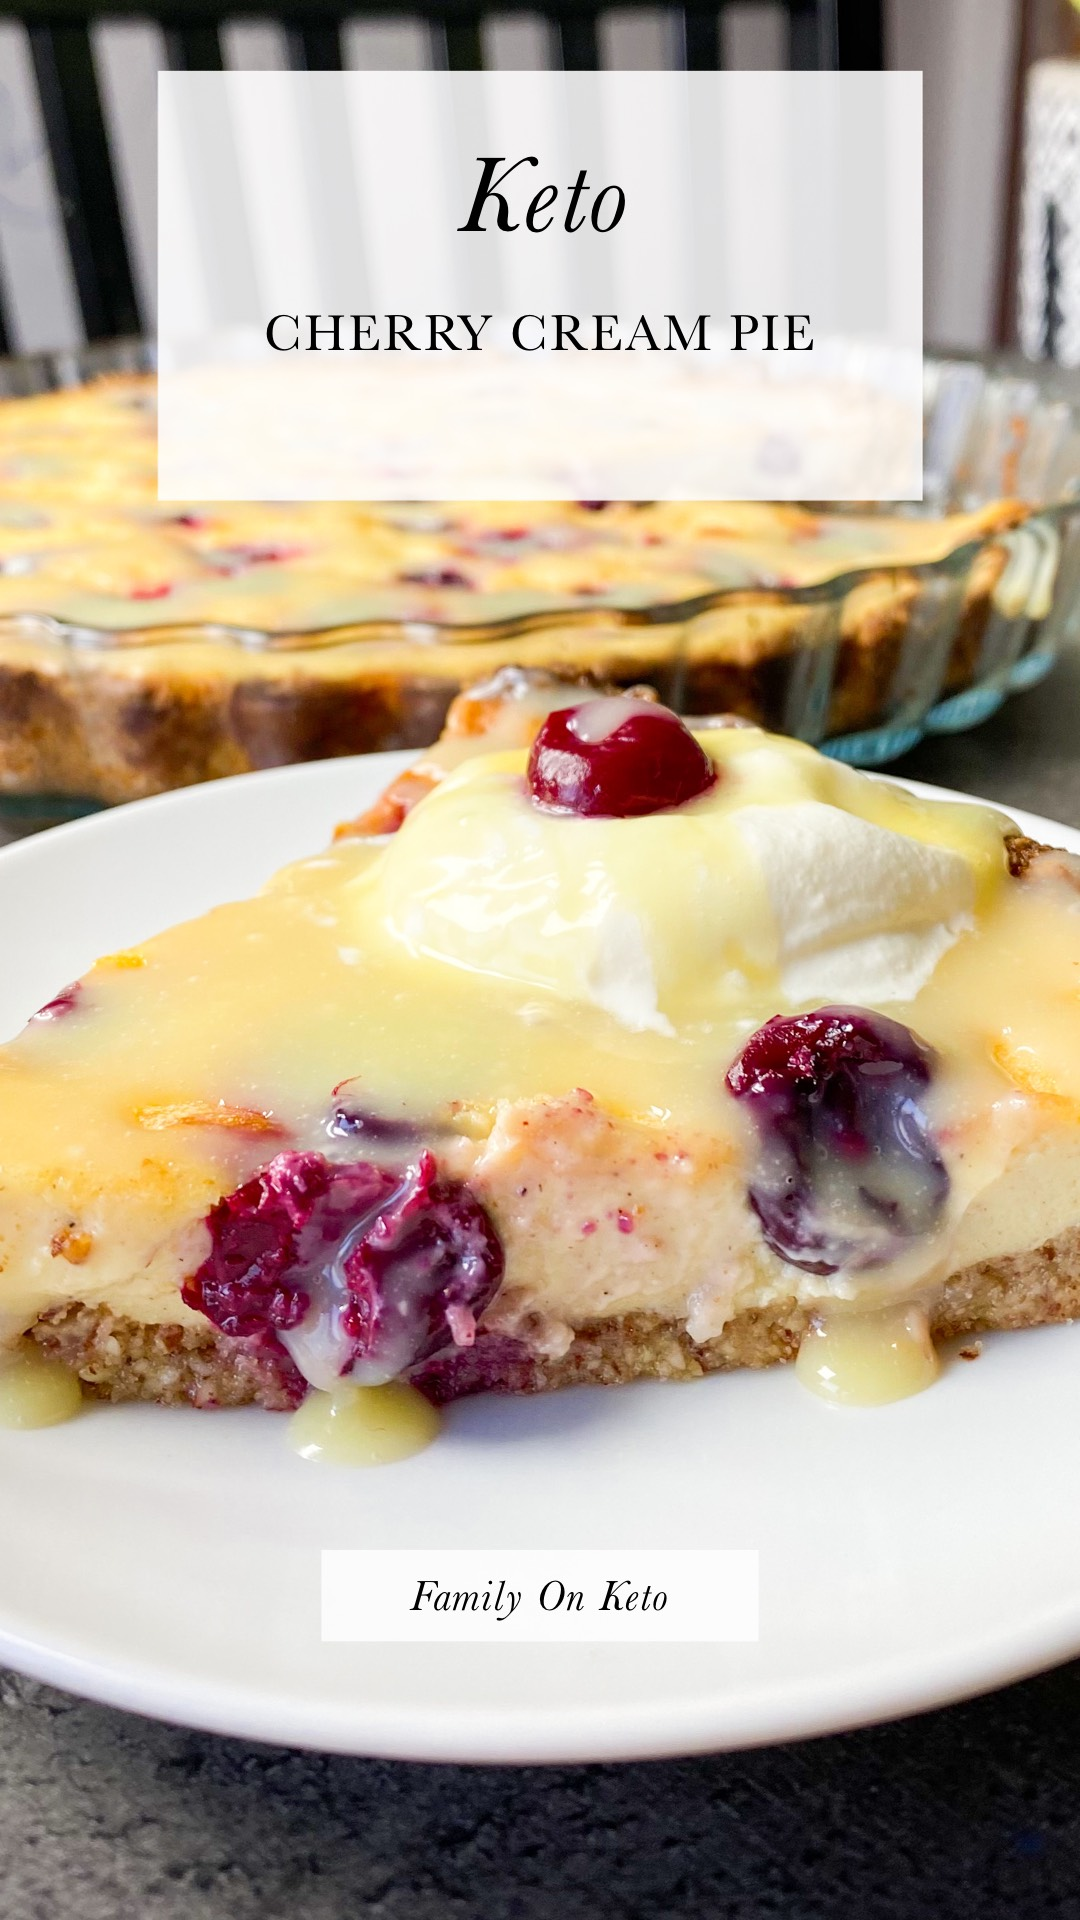 Photo of a slice of keto cherry cream pie with sugar-free white chocolate on top